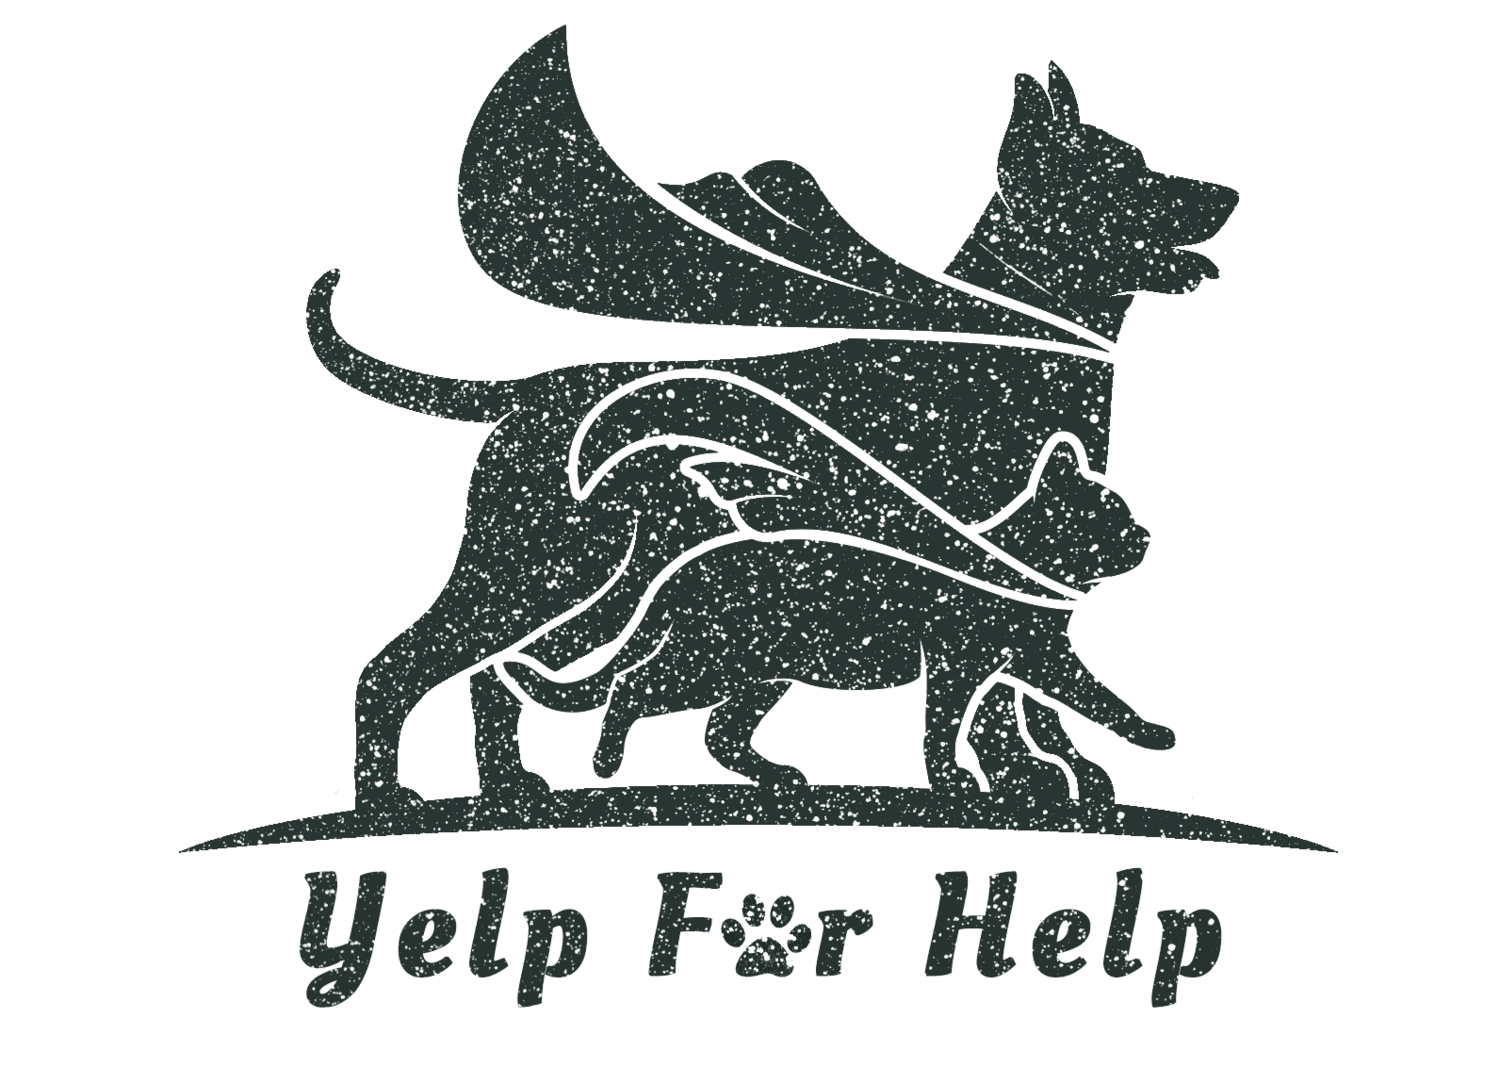 Yelp For Help, LLC